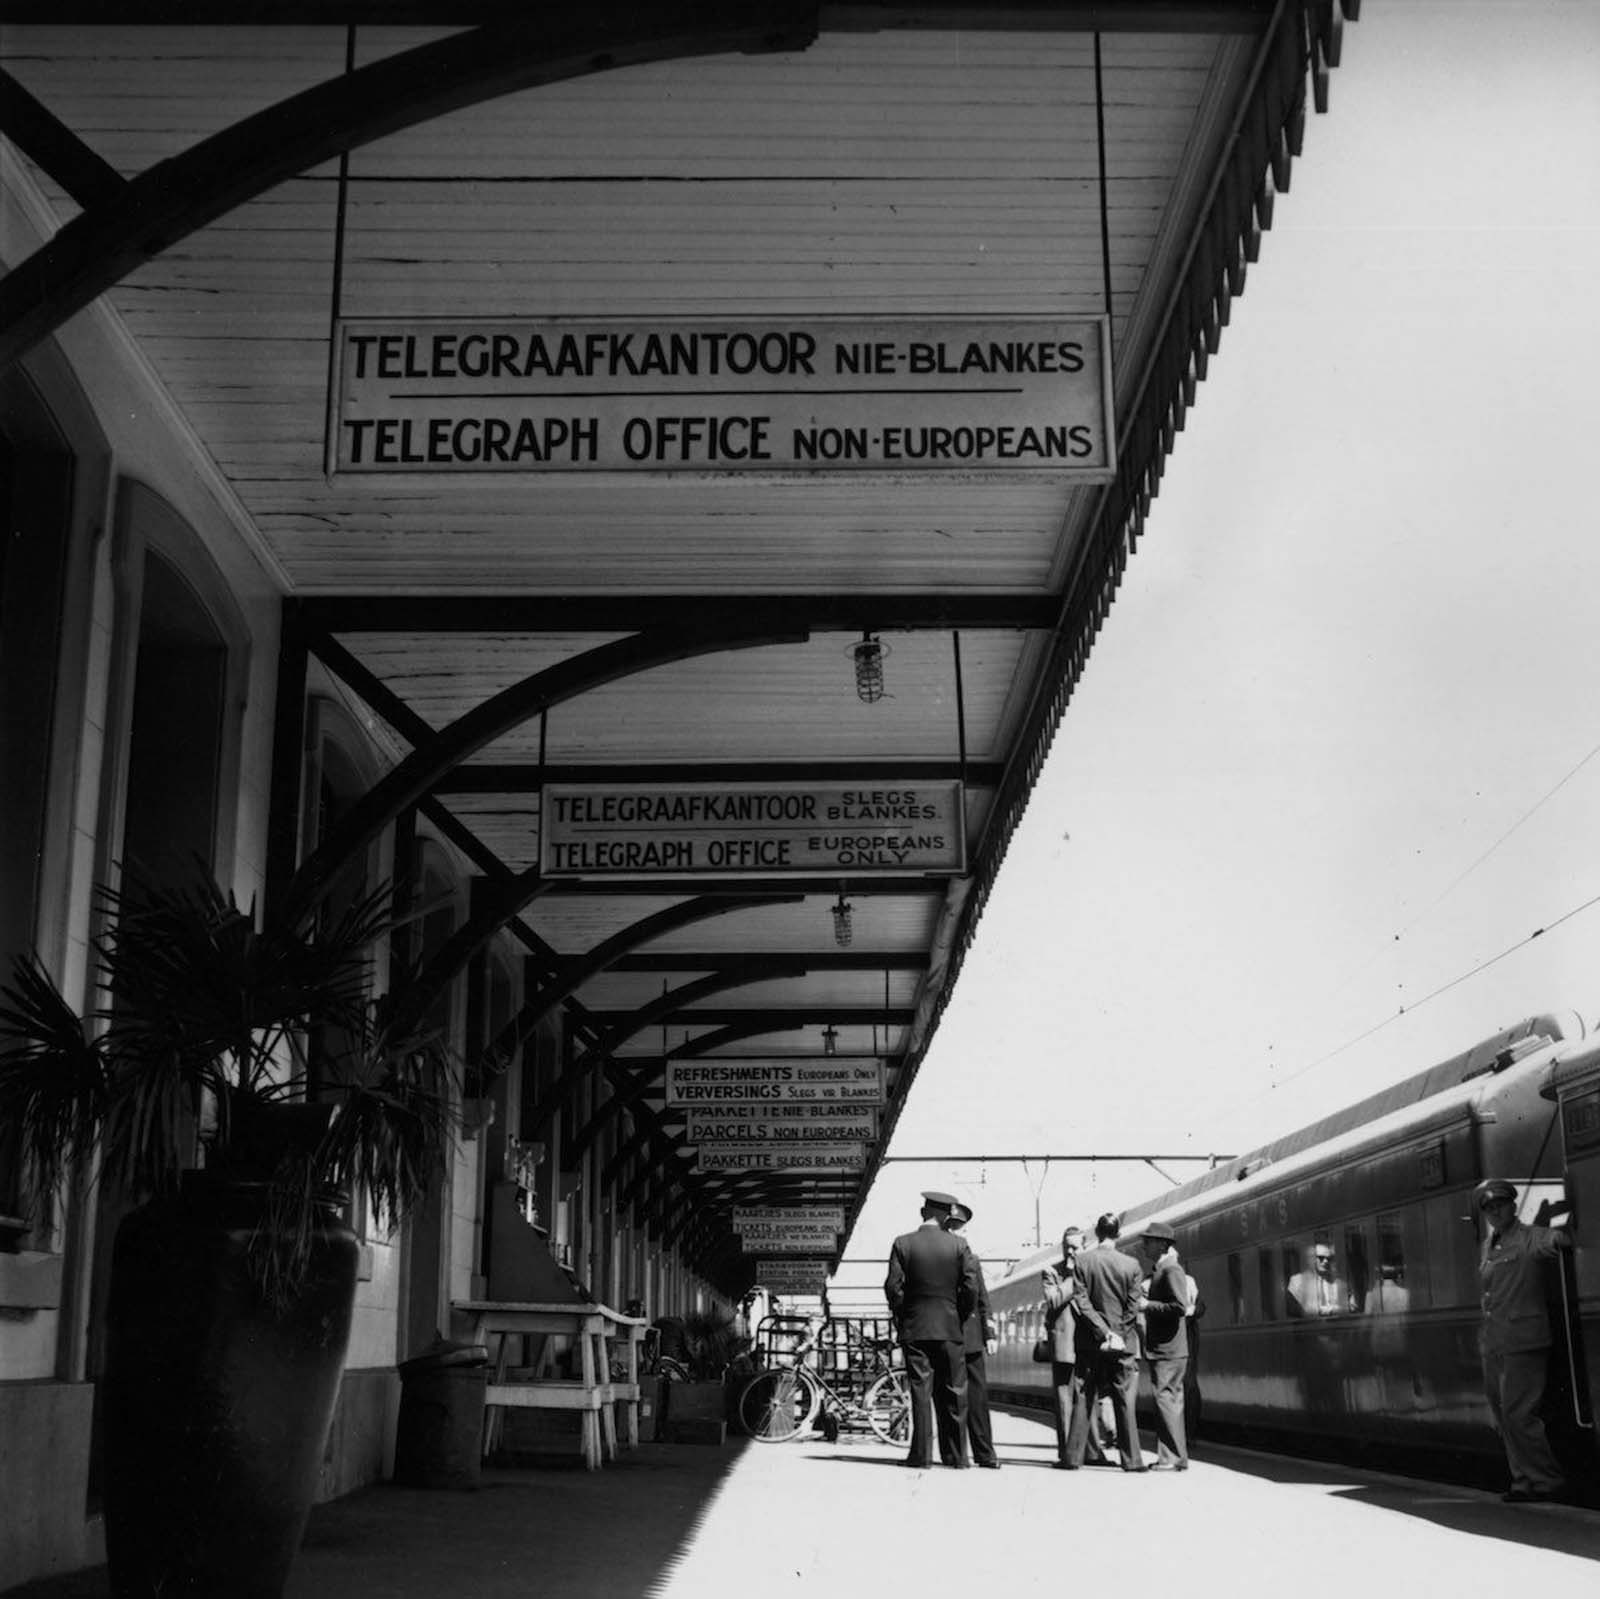 Signs in English and Afrikaans, in Wellington railway station, South Africa, enforcing the policy of apartheid or racial segregation. 1955.